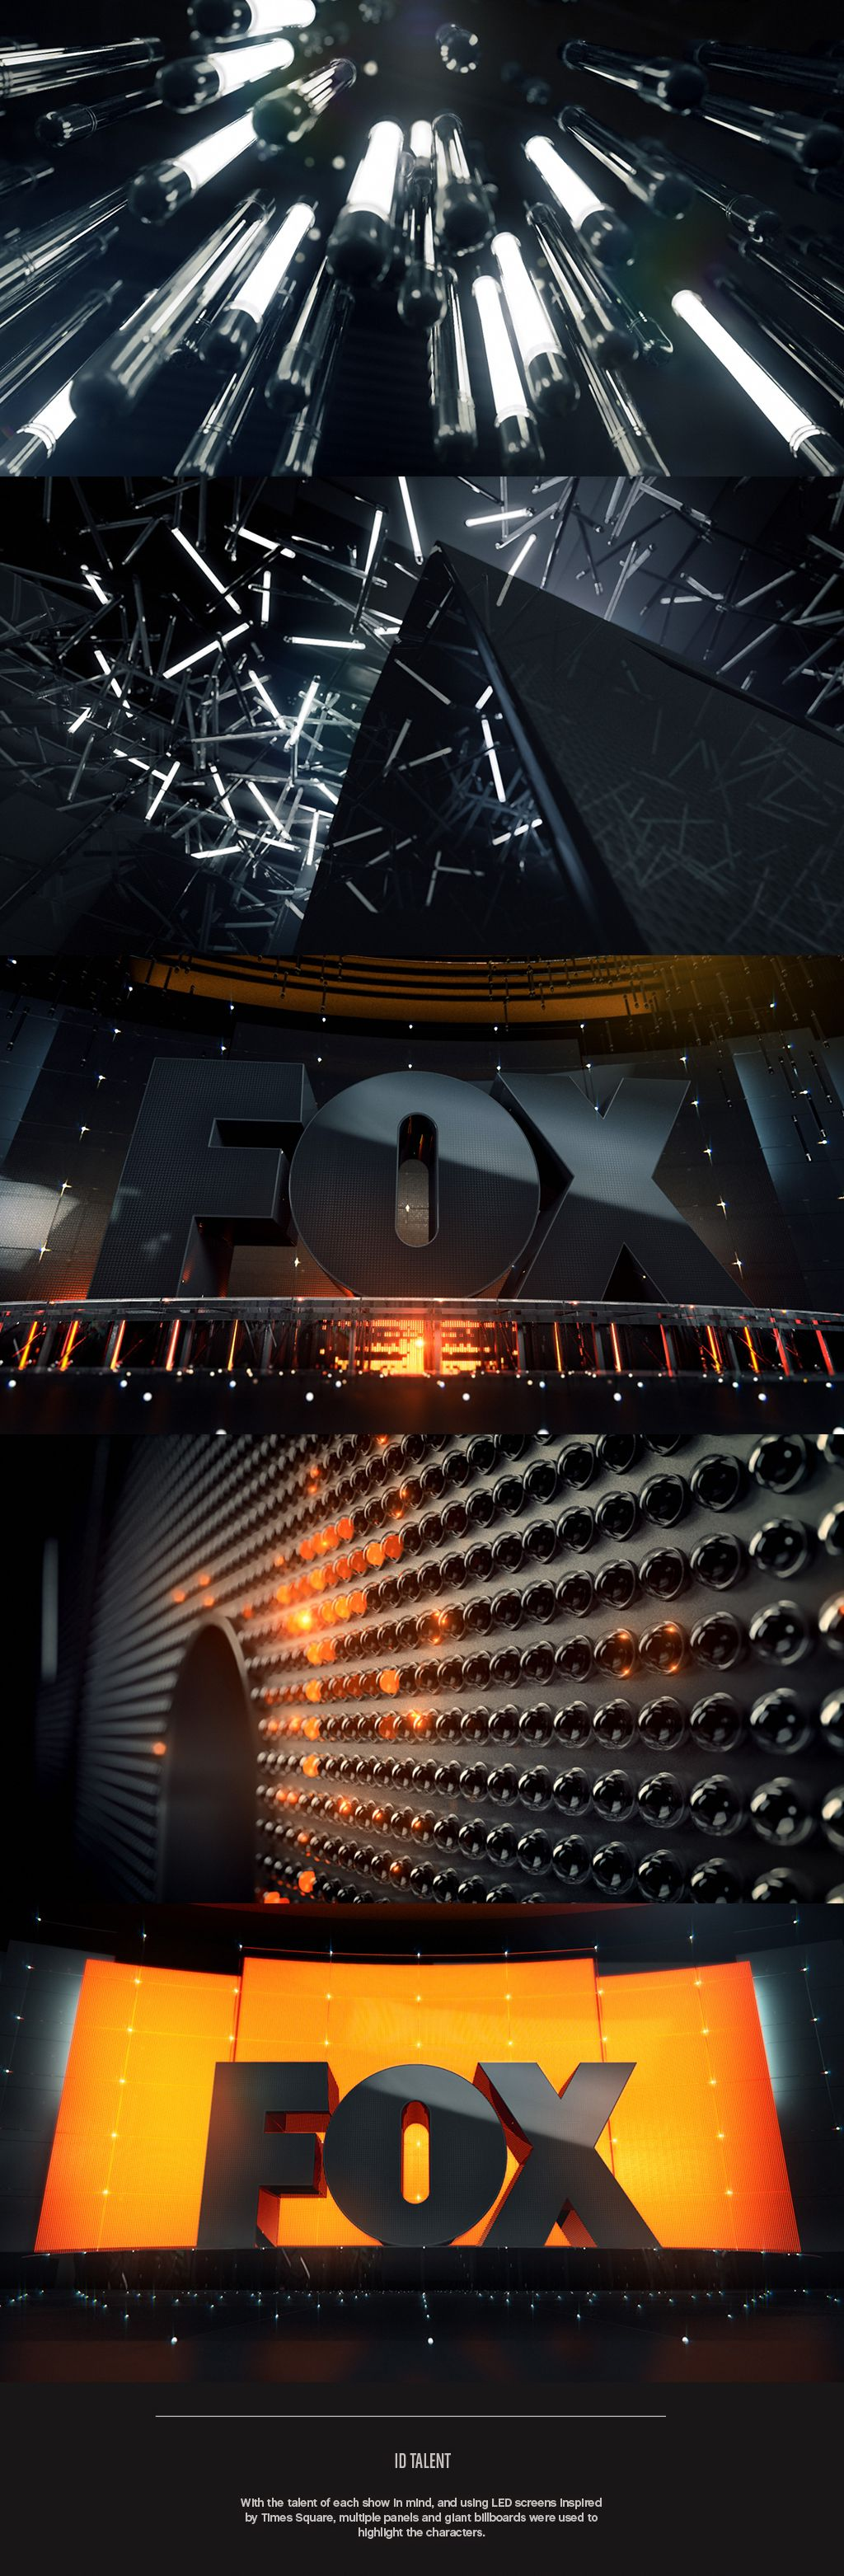 Fox case study superestudio animation design company for Super estudio